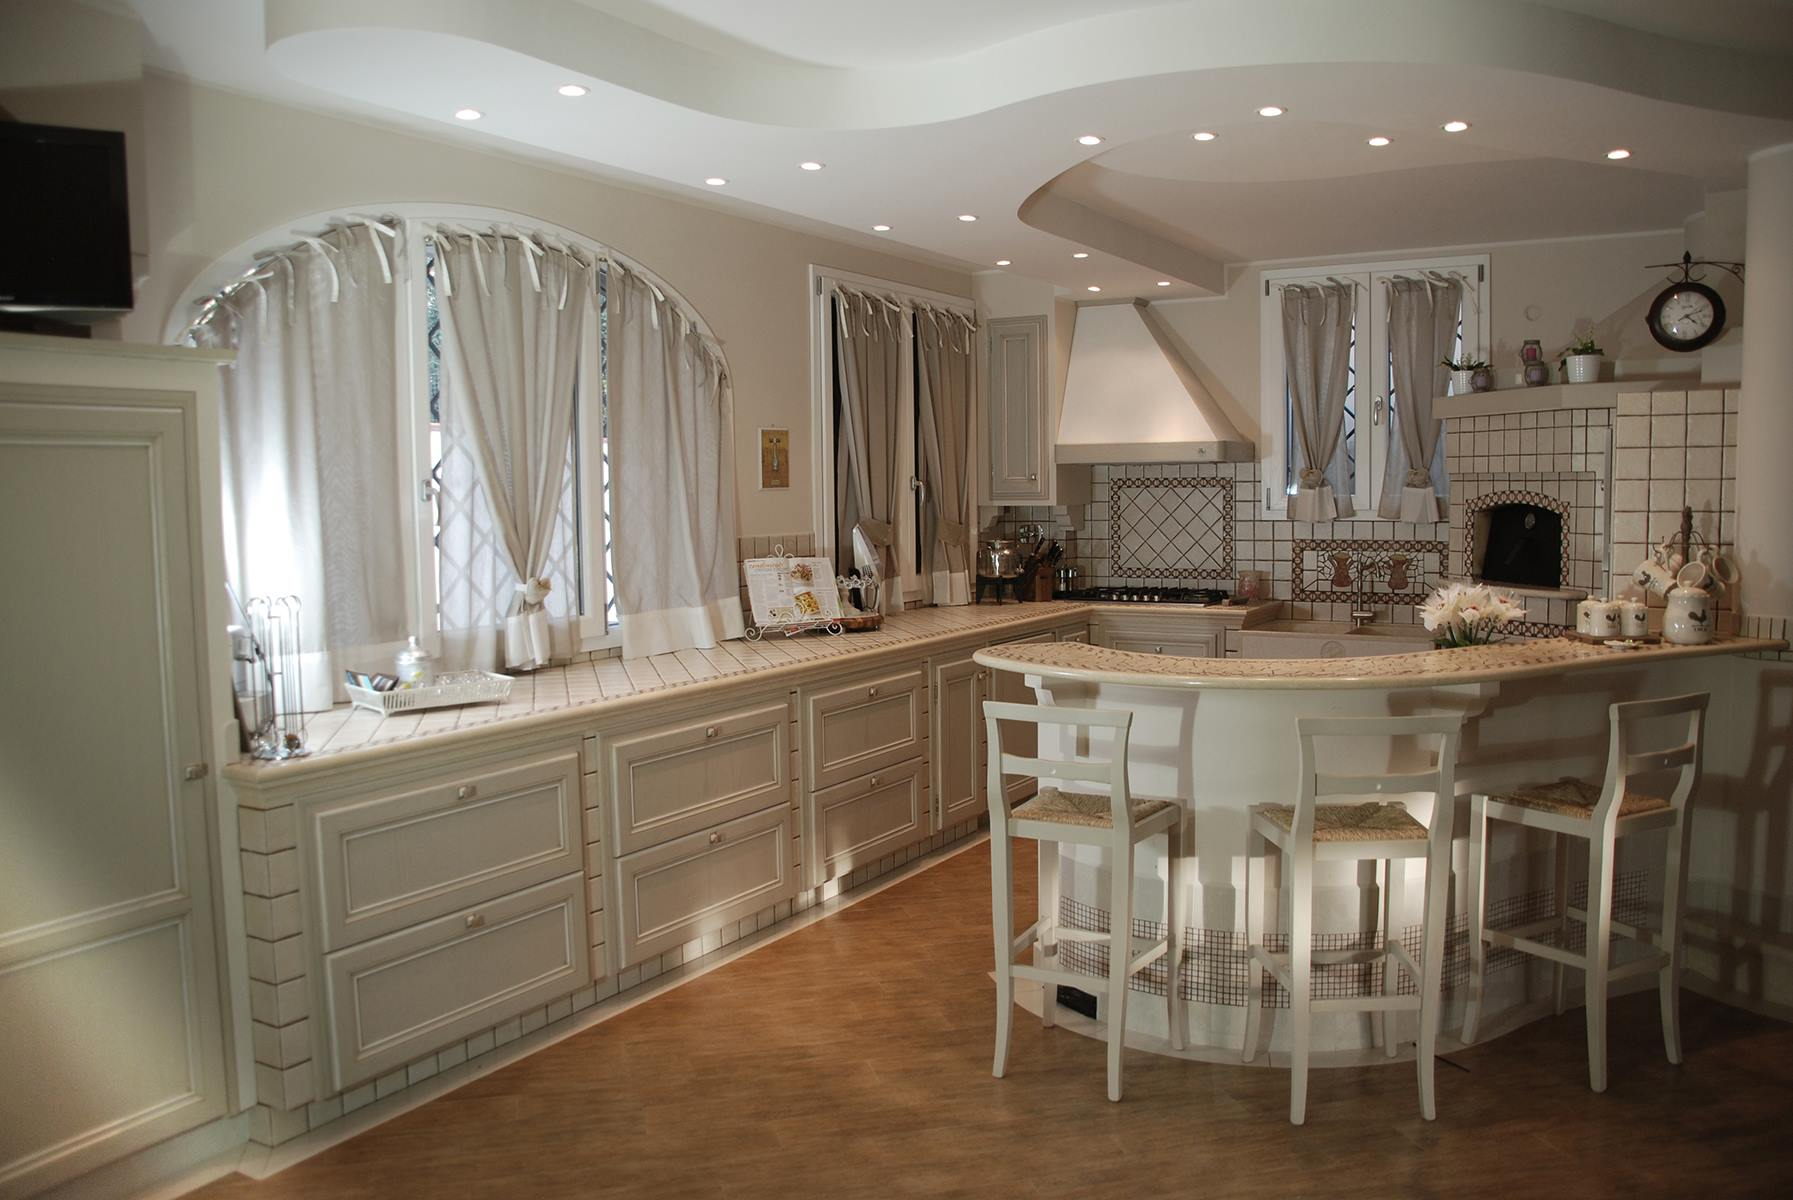 Awesome cucine in muratura shabby chic ideas ideas - Cucine in muratura ...